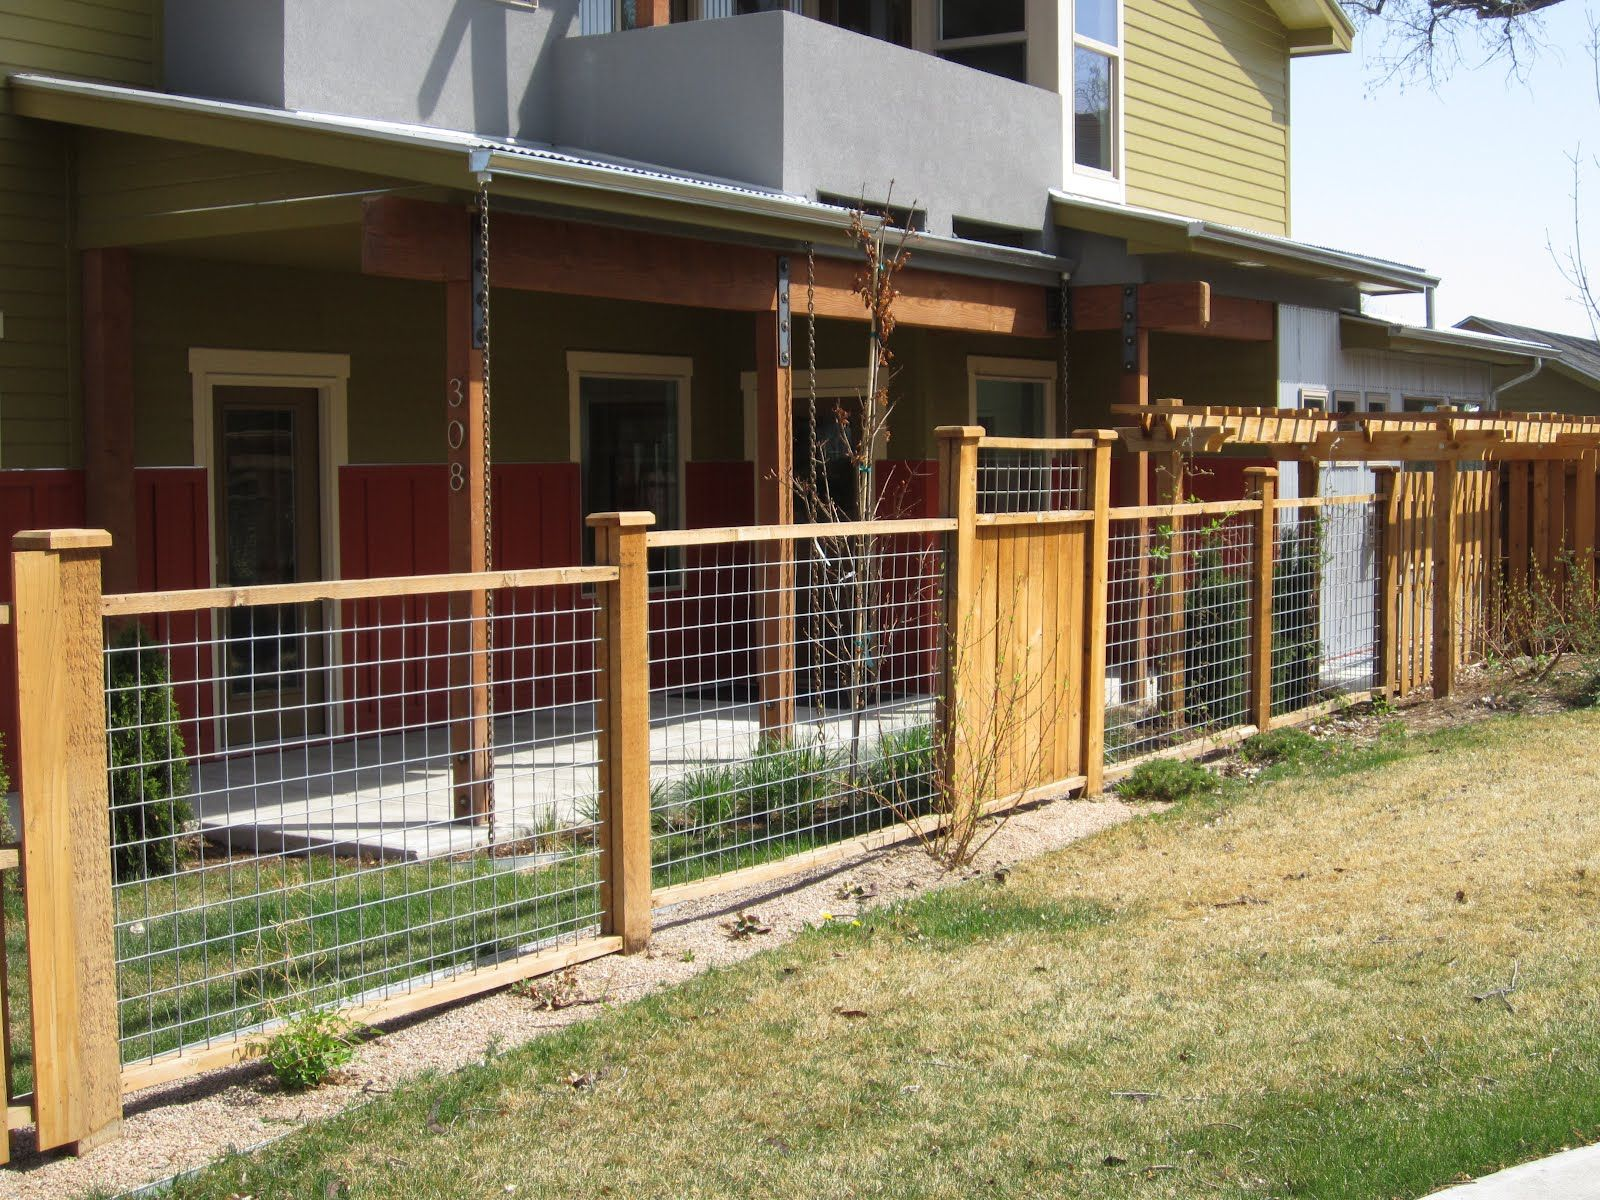 Yard fence ideas mix of hog wire fencing and wood panels for Front garden fence designs